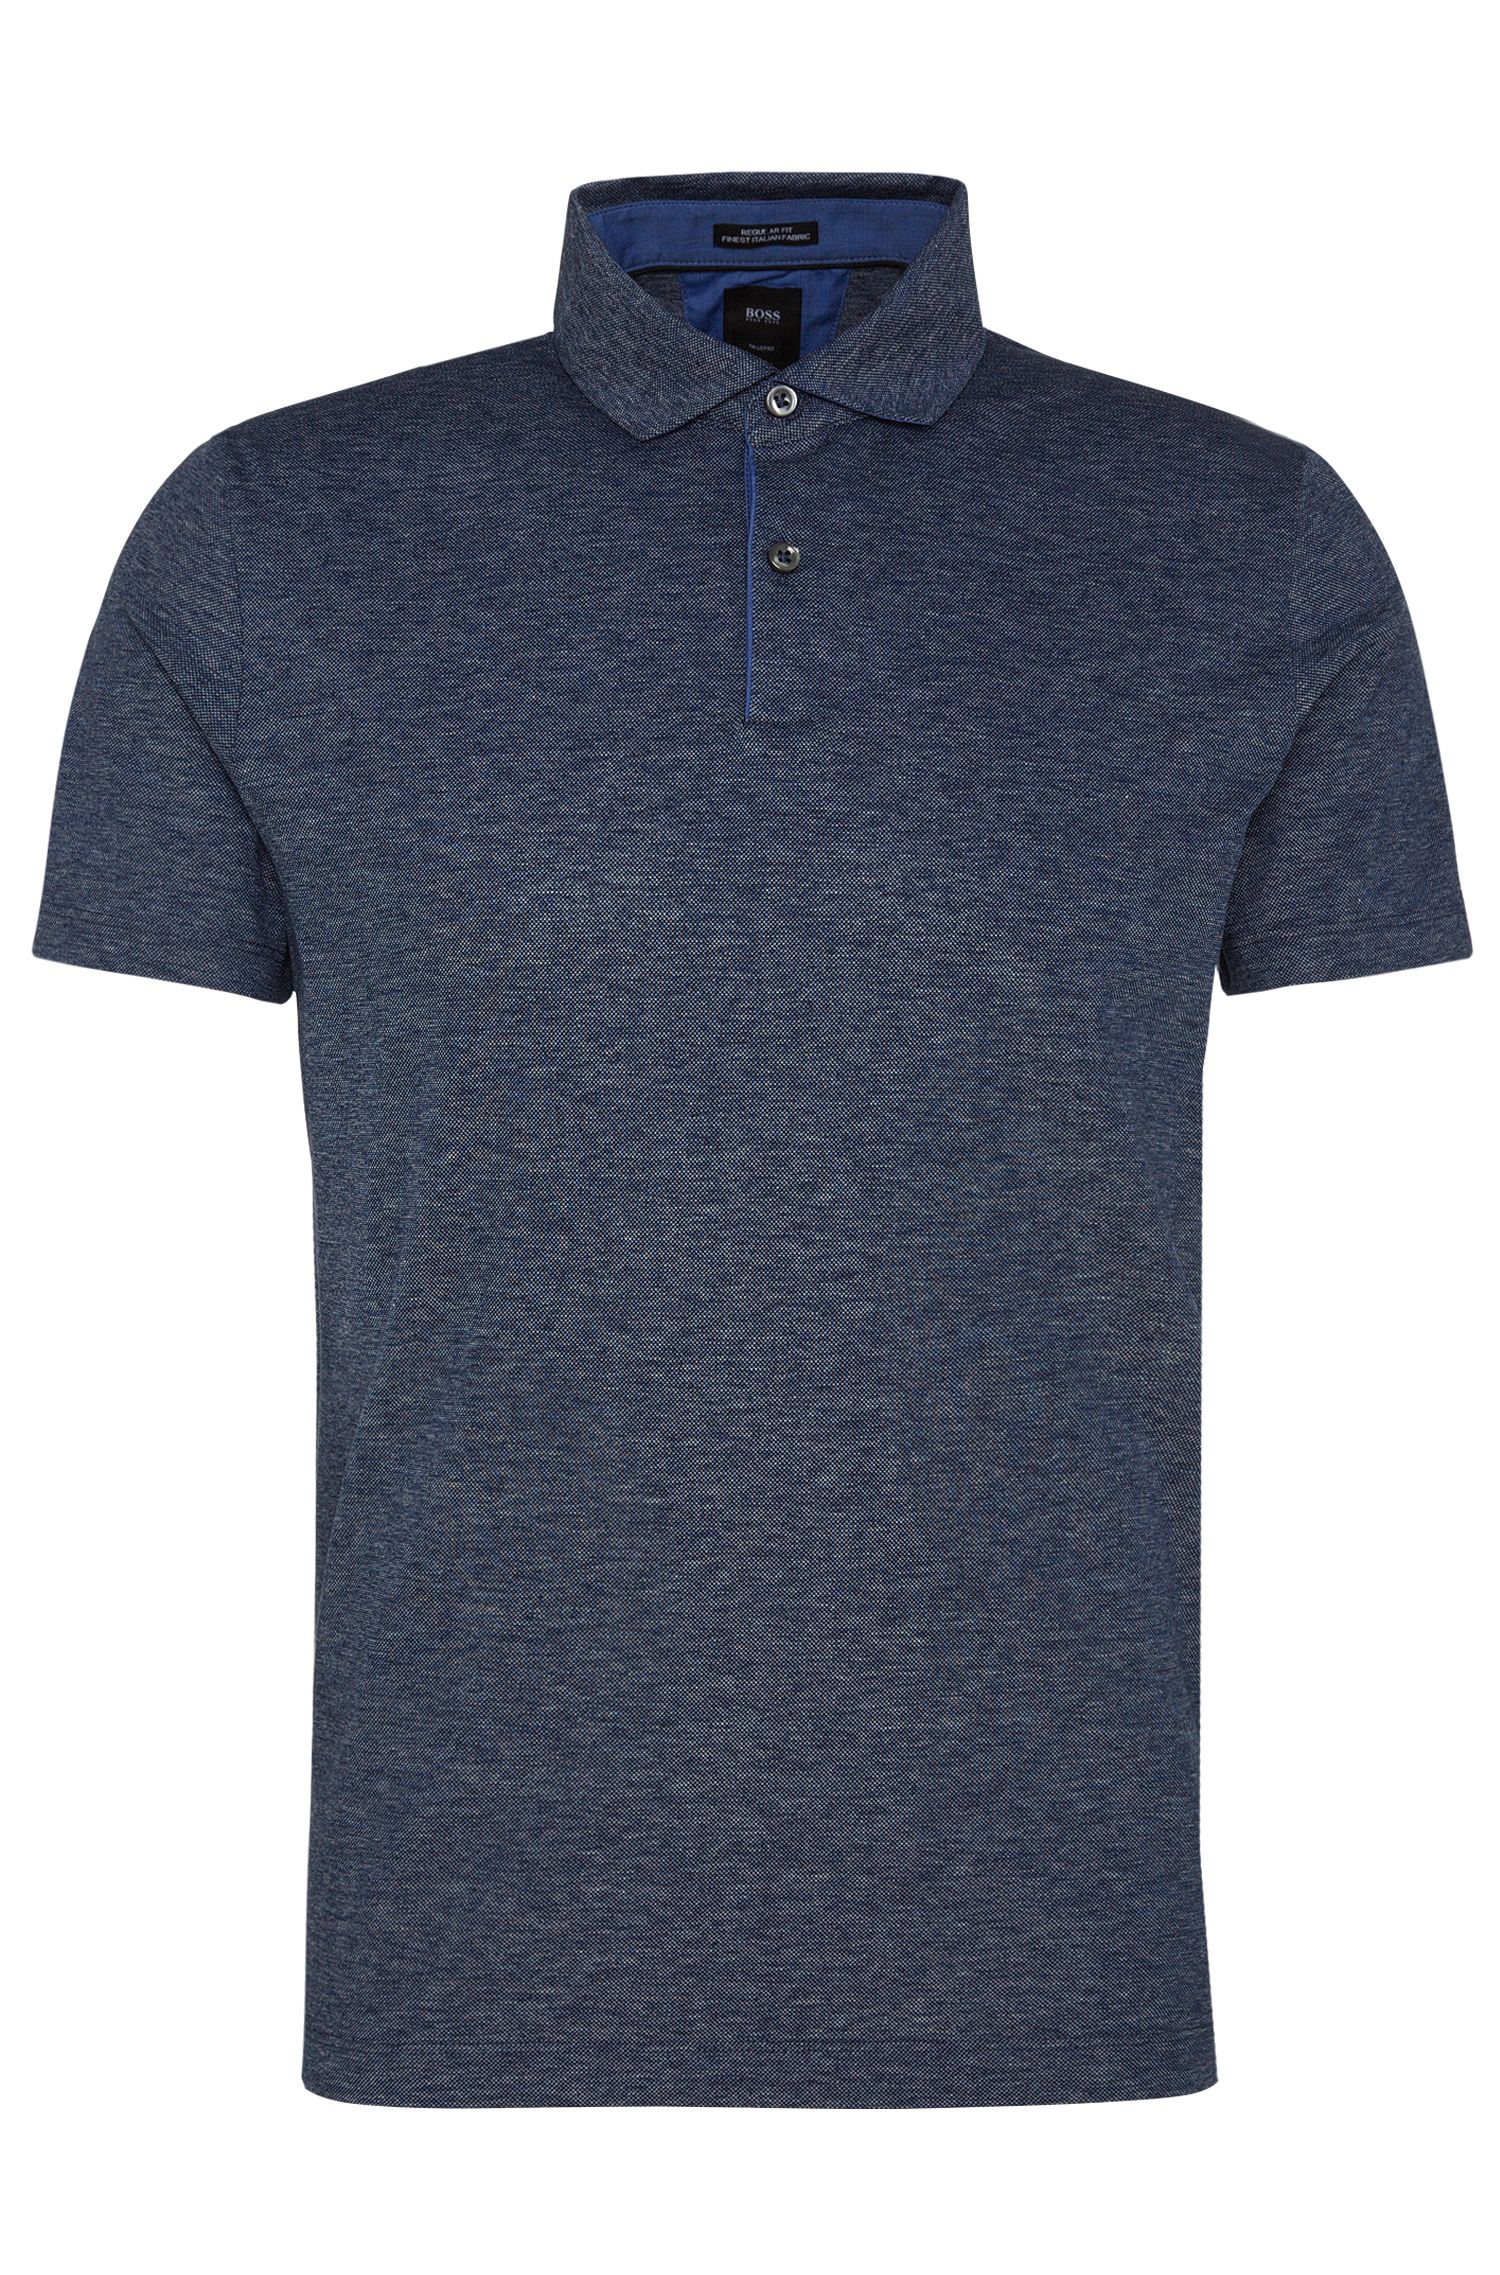 Regular-Fit Tailored Poloshirt aus reiner Baumwolle: 'T-Peret 02'